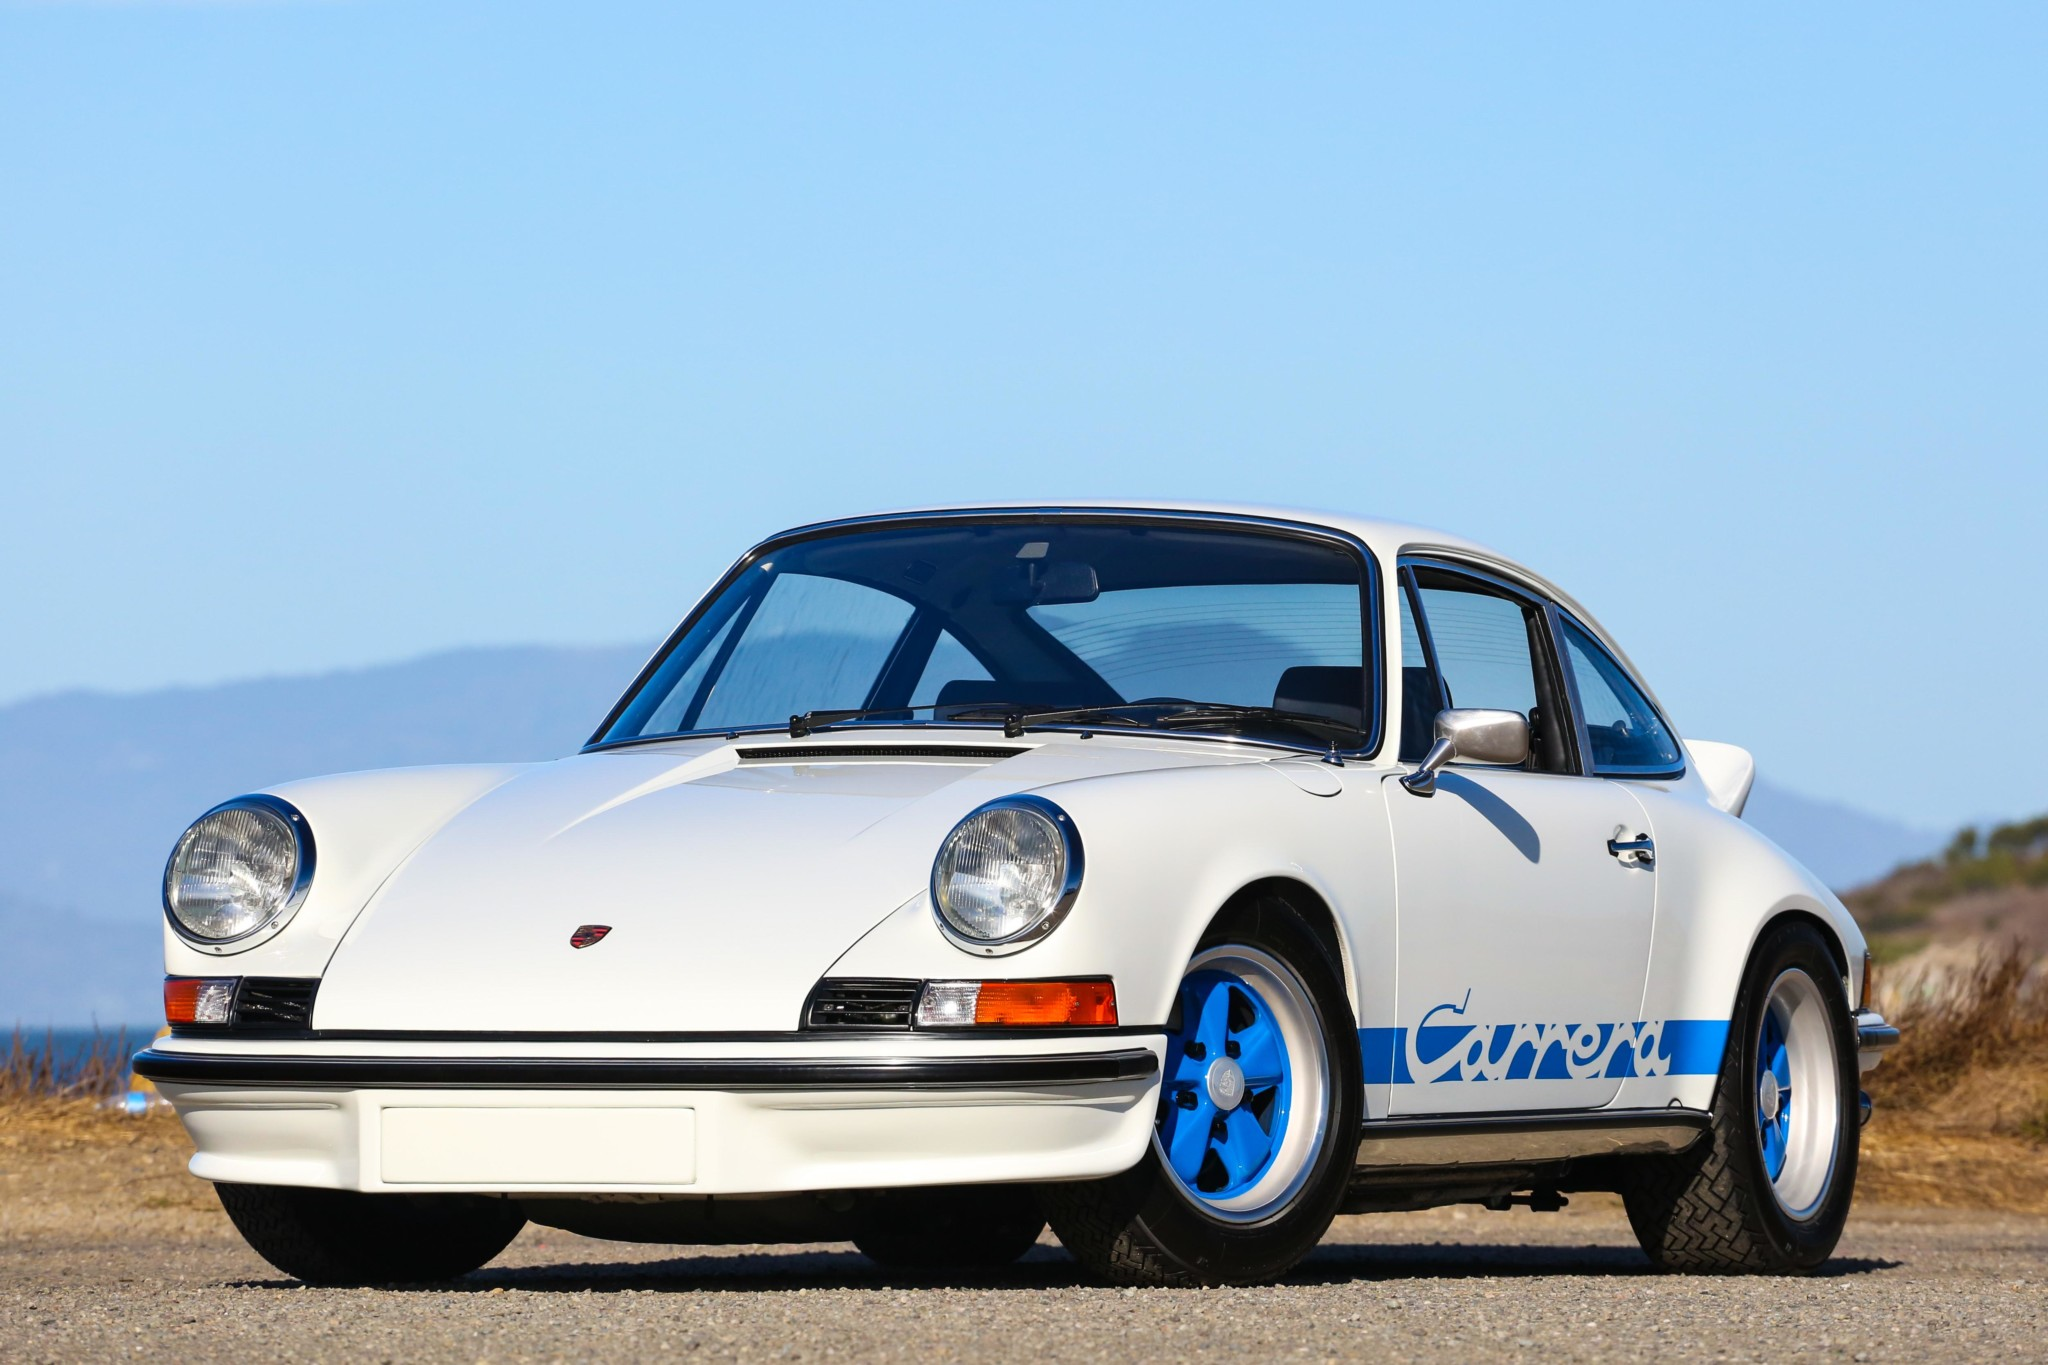 Porsche-911-Carrera-RS-2.7-1973-for-sale-39